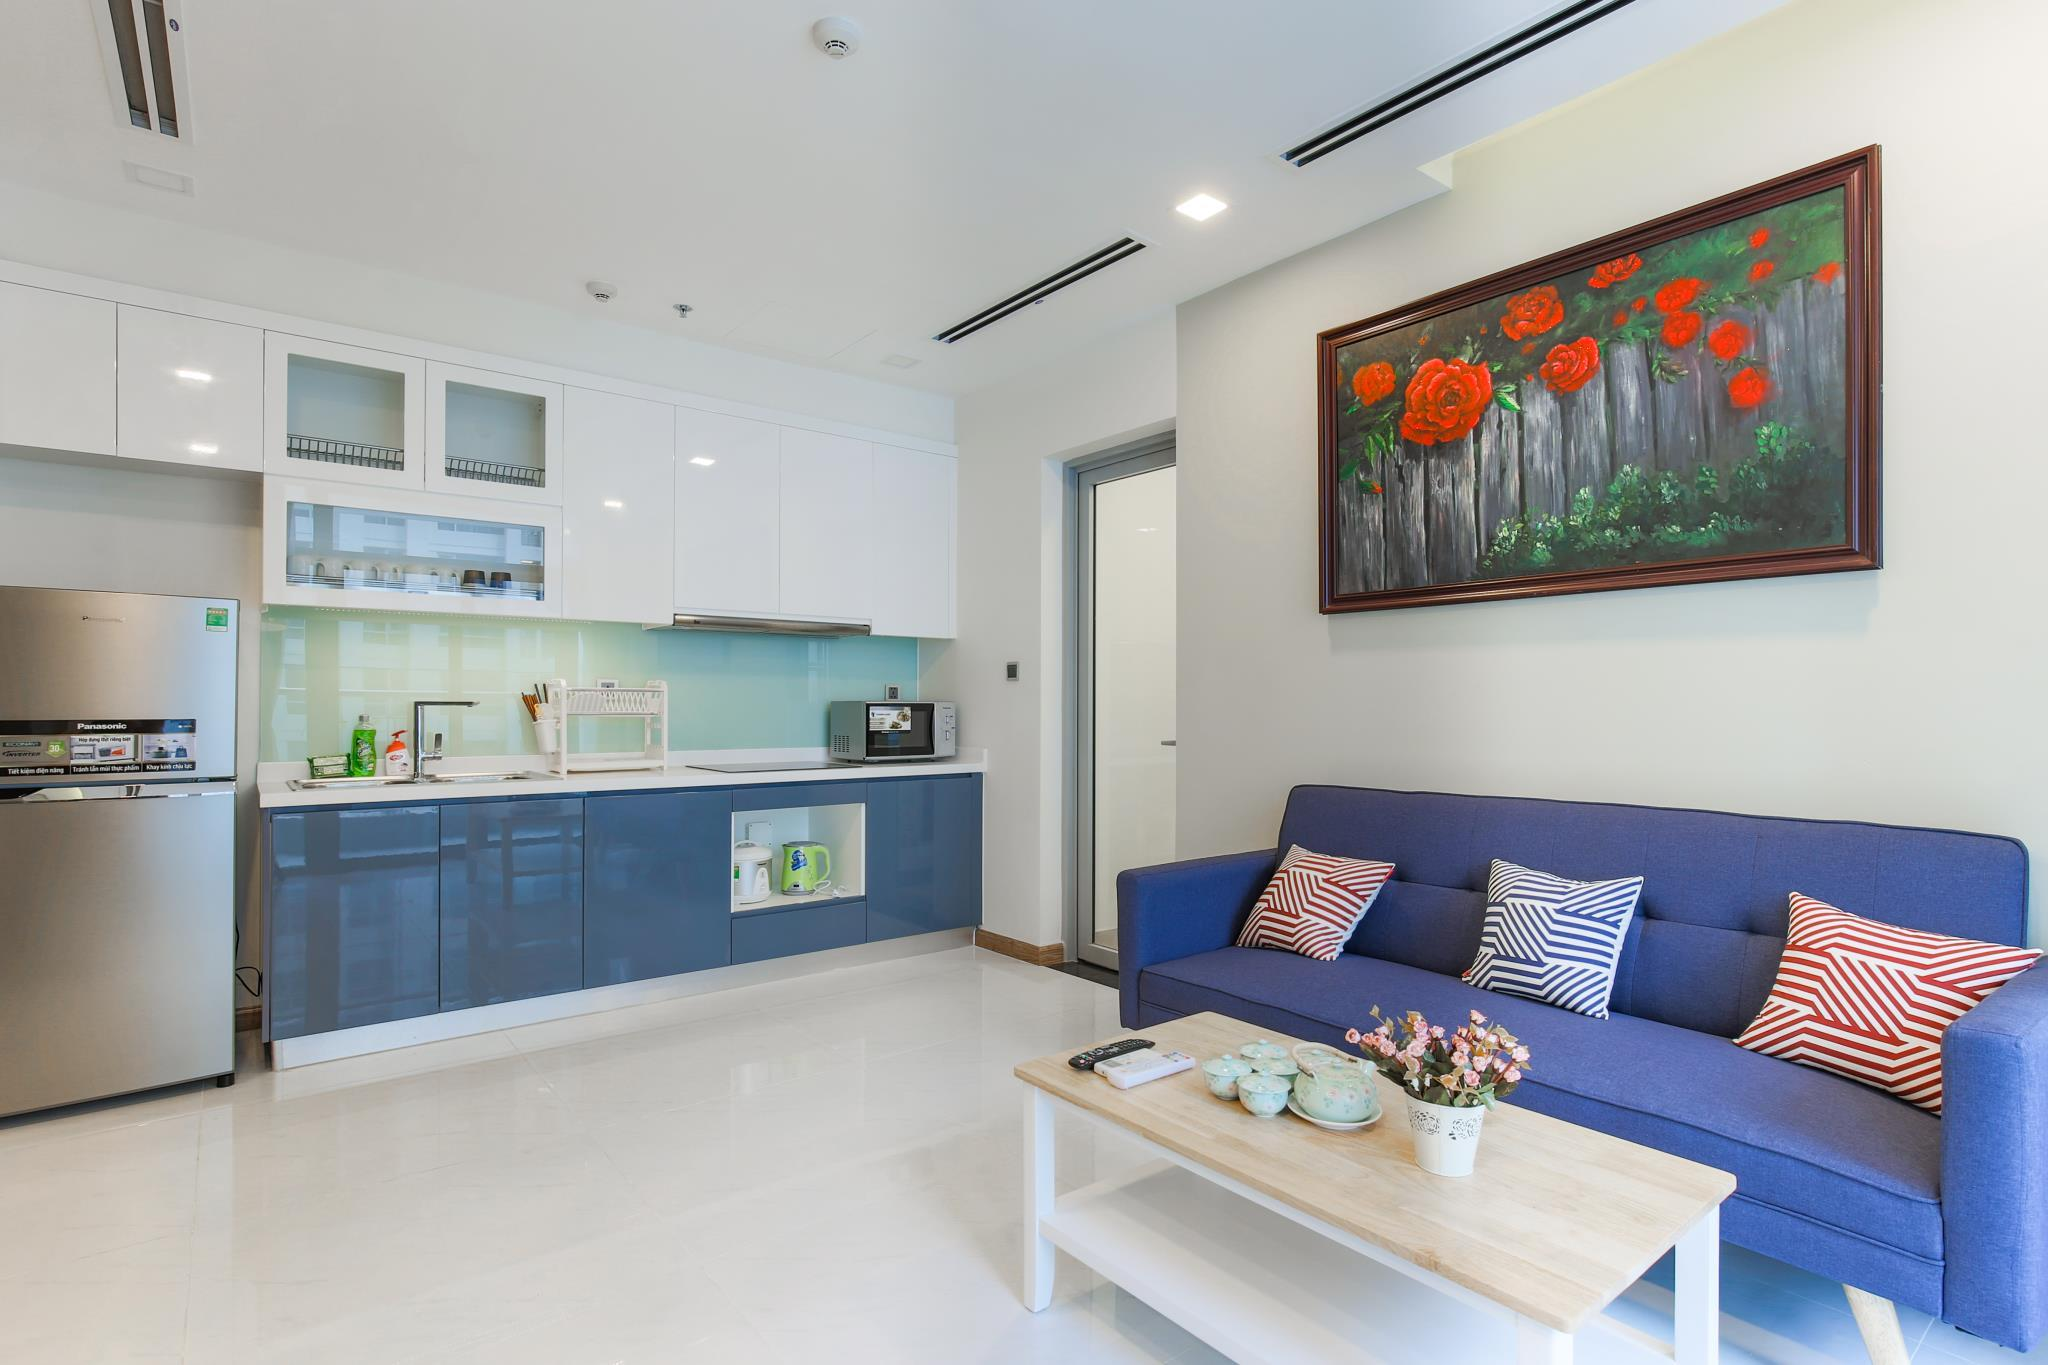 NEW Apartment In Vinhomes Central Park 3 2